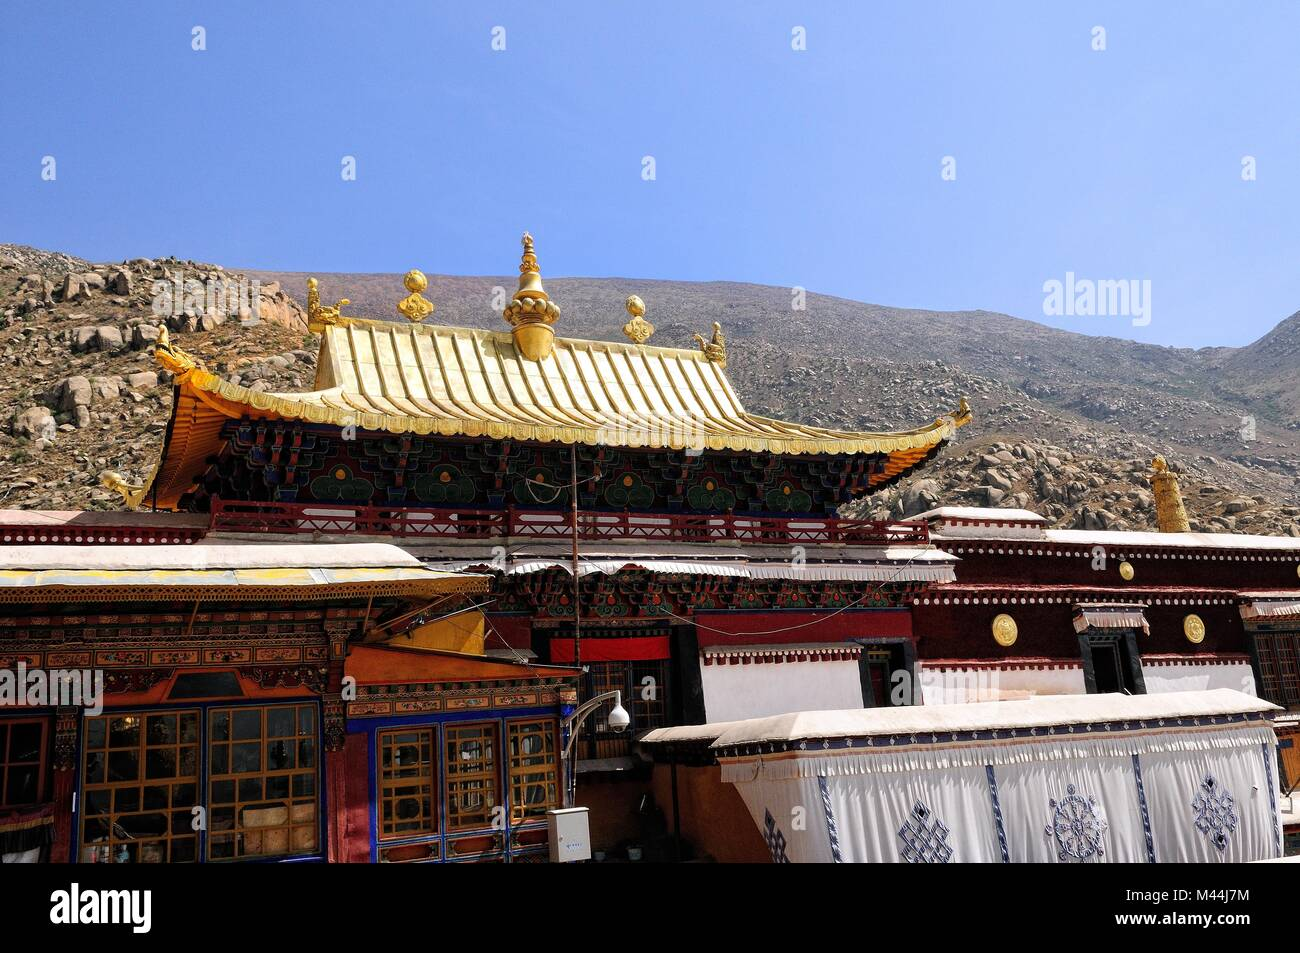 Golden Roof at Drepung Monastery in Lhasa Tibet - Stock Image